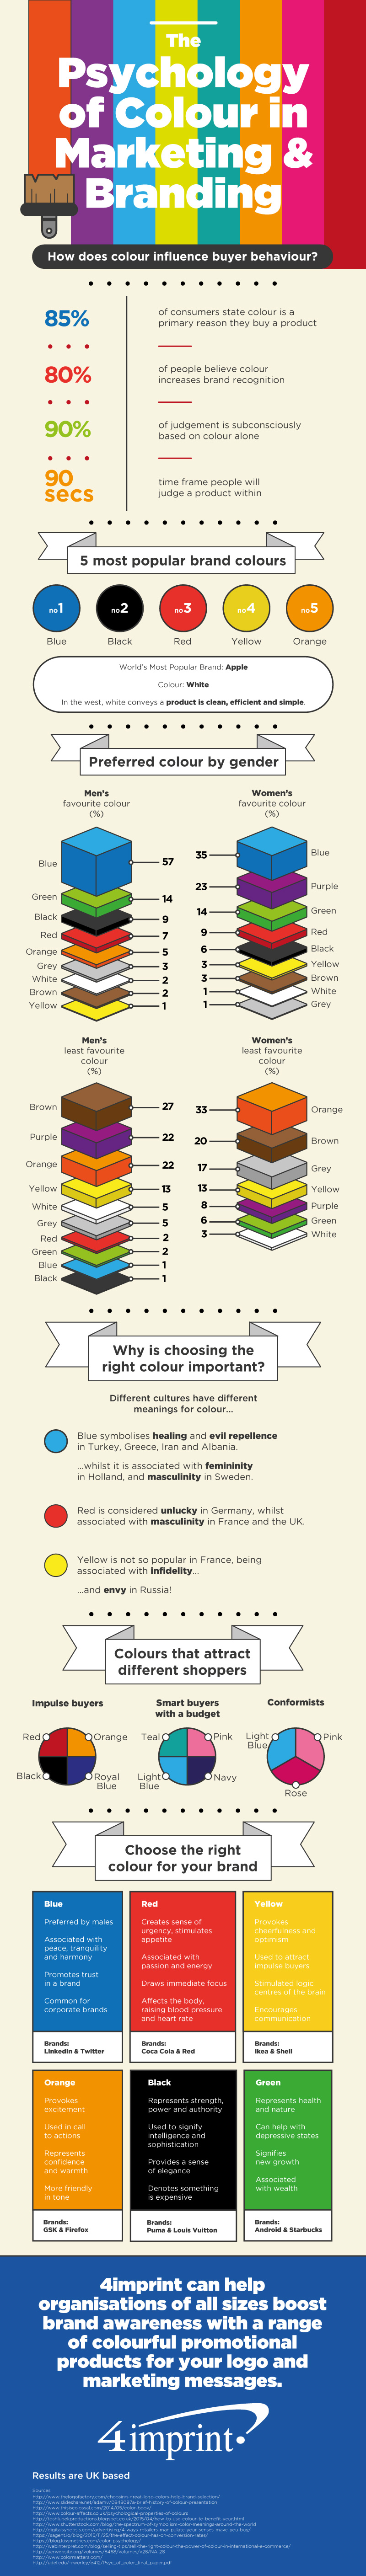 4imprint psychology of colour